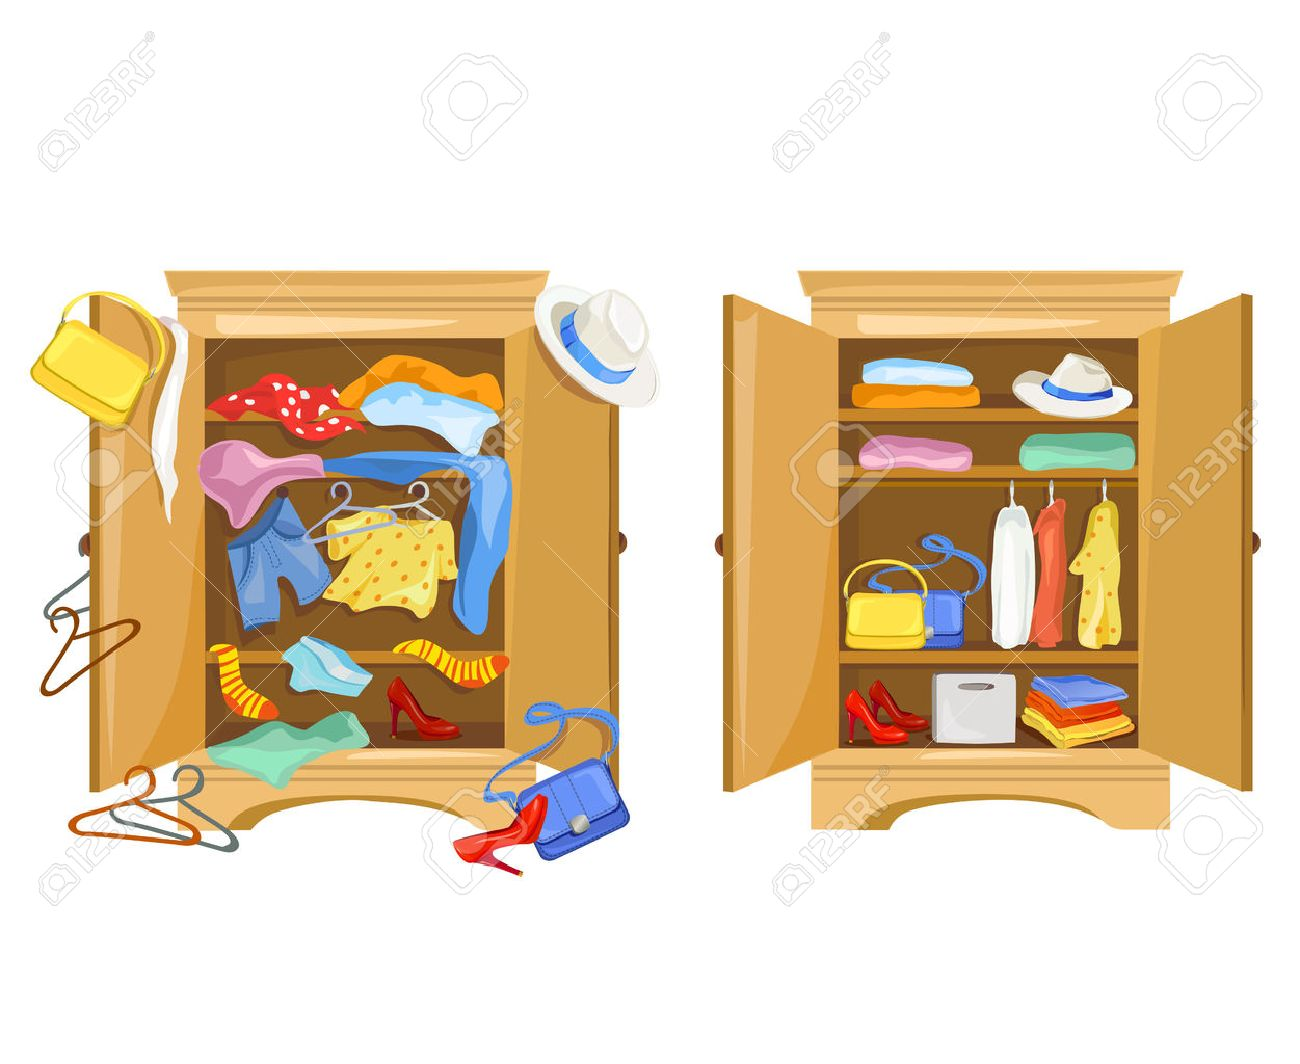 wardrobes with clothes. tidy and clutter in the closet. vector illustration Standard-Bild - 68720082